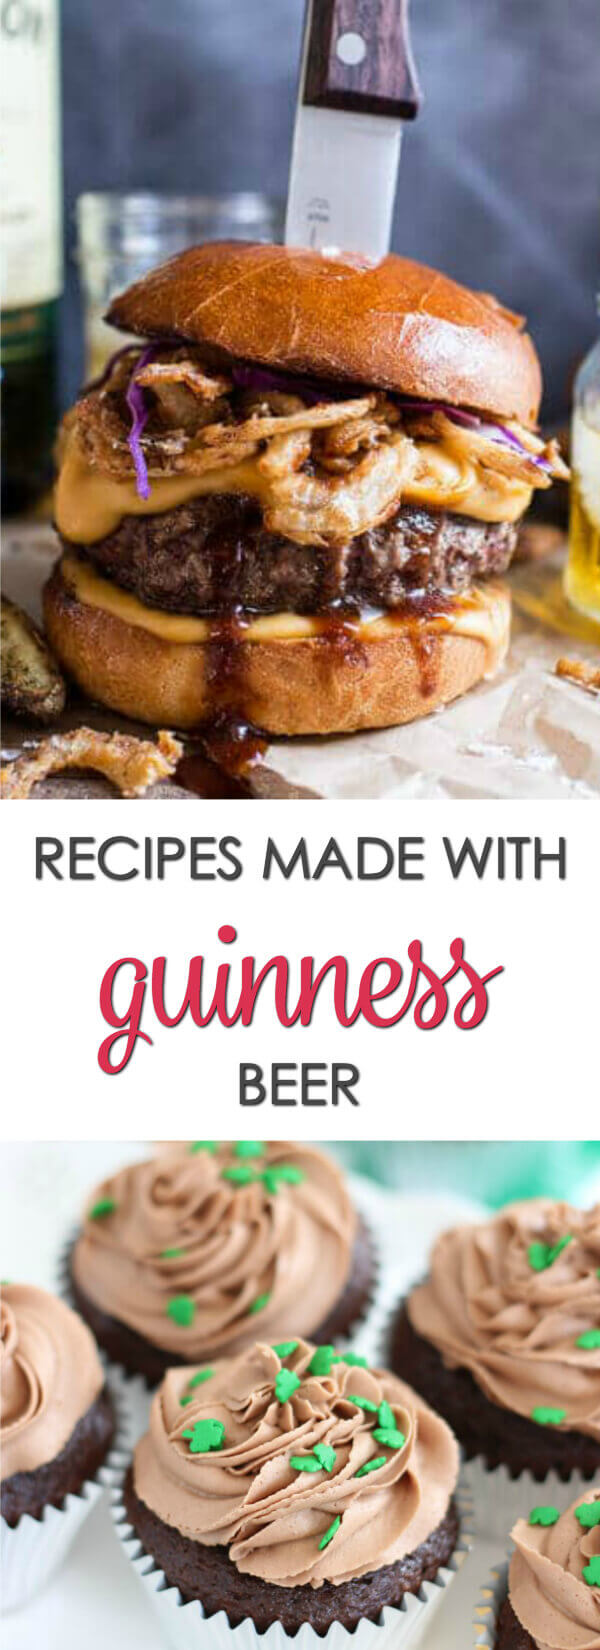 Here are 36 Guinness stout recipes with everything from Guinness Stew to onion rings to Guinness dessert recipes like brownies and chocolate cake. #Itisakeeper #recipes #stpatricksday